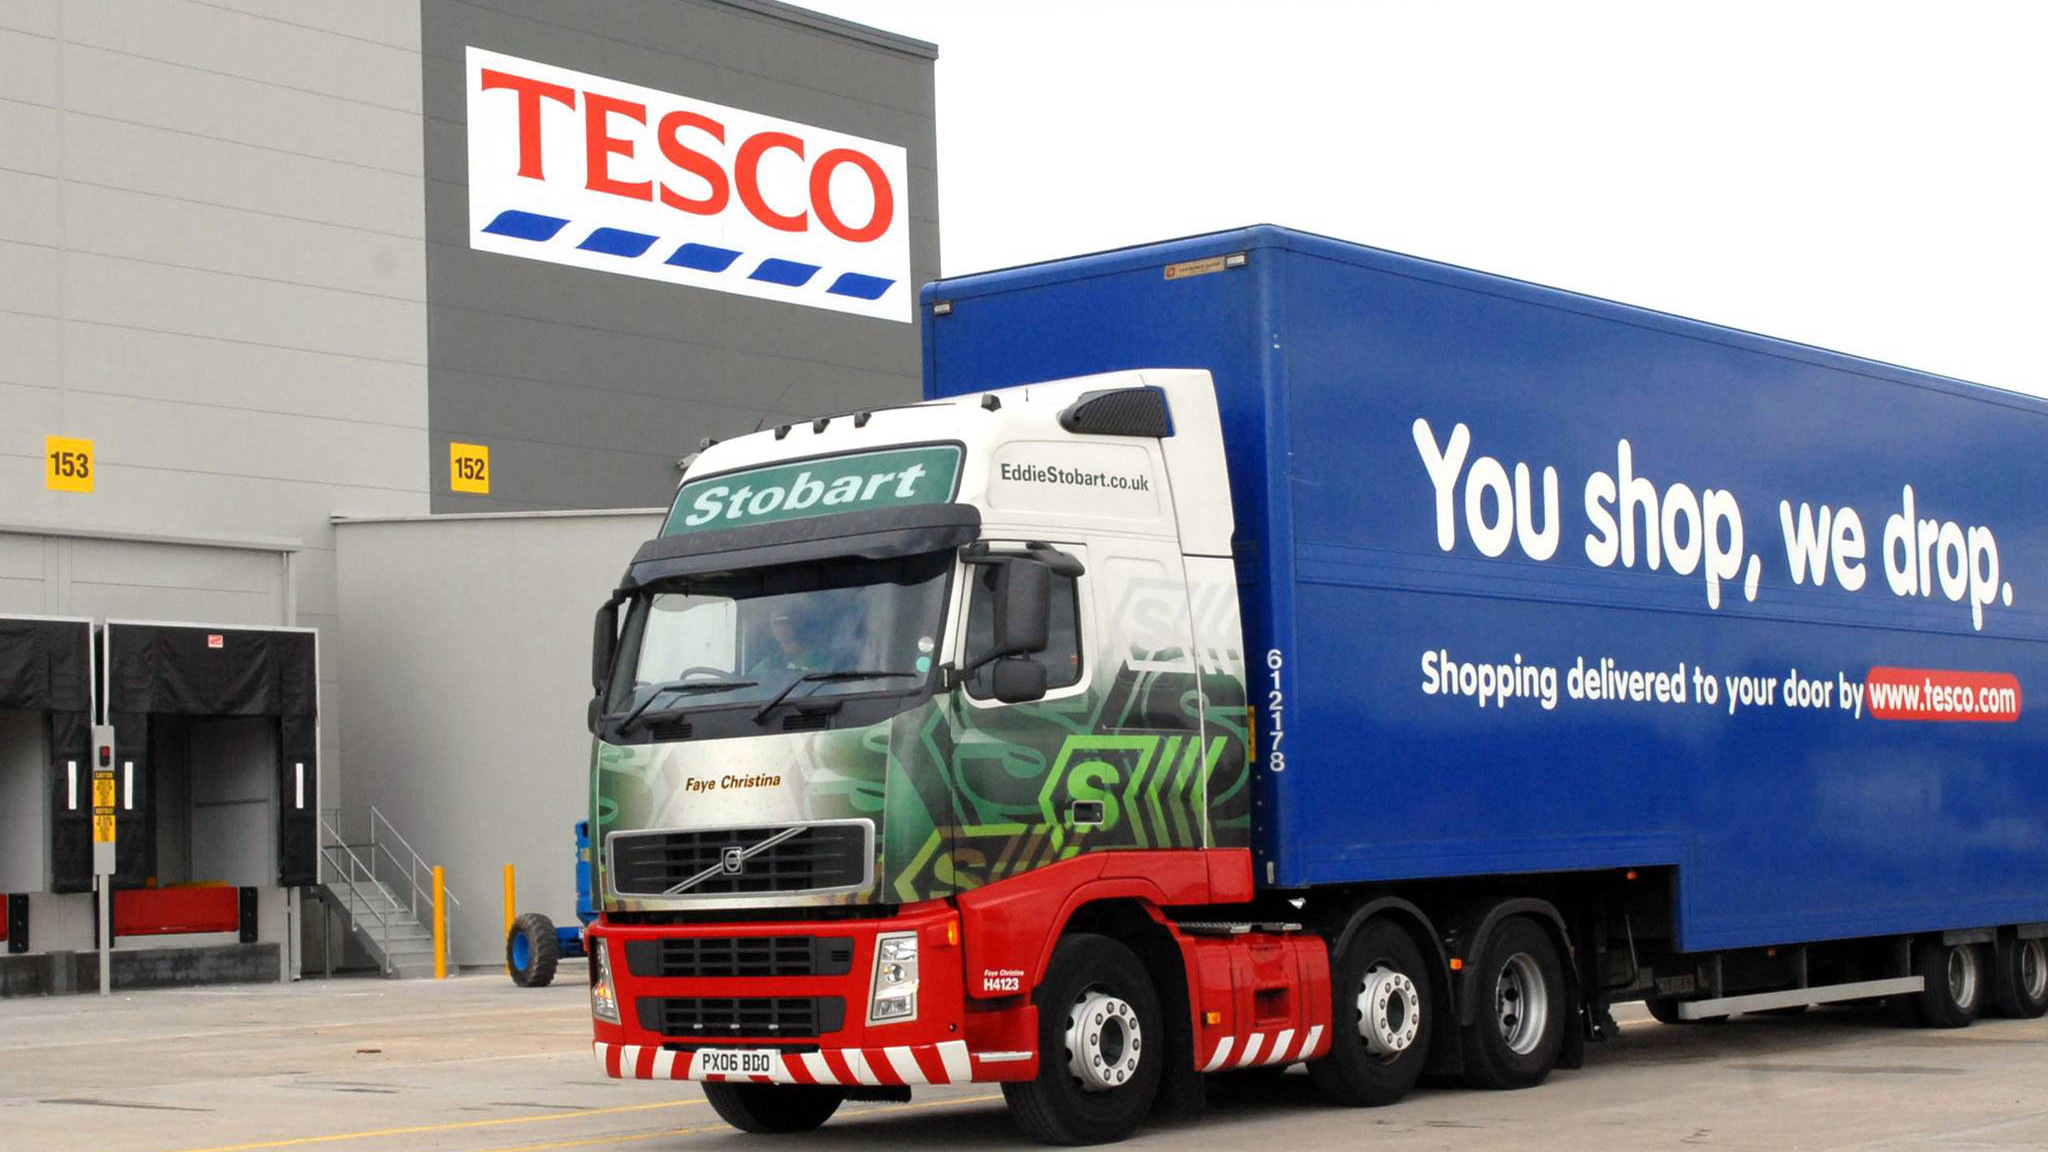 tesco freight truck pulling into loading dock